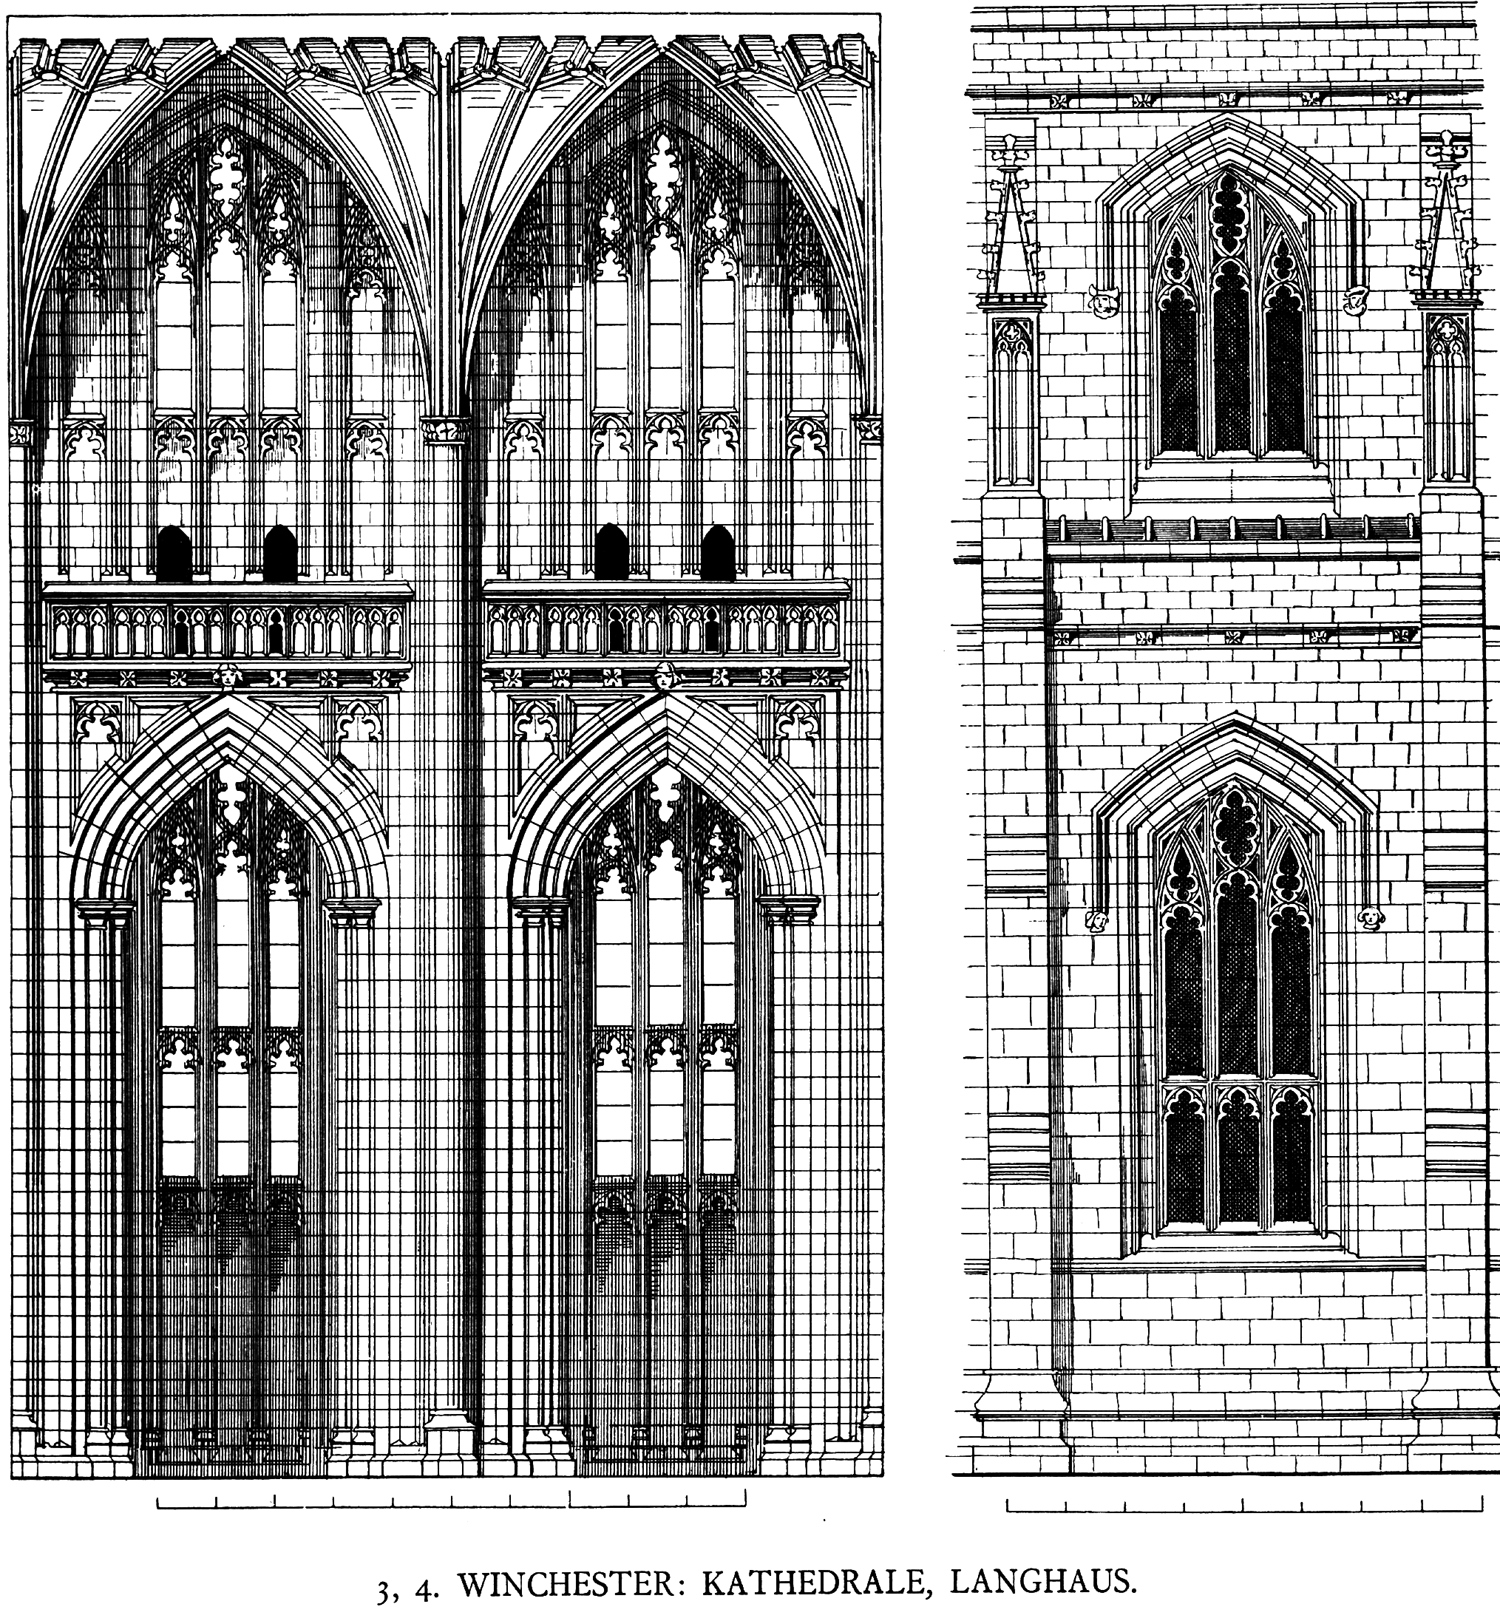 an overview of gothic architecture The most fundamental element of the gothic style of architecture is the pointed arch, which was likely borrowed from islamic architecture that would have been seen in spain at this time the pointed arch relieved some of the thrust, and therefore, the stress on other structural elements it then became possible to reduce the size of the columns.